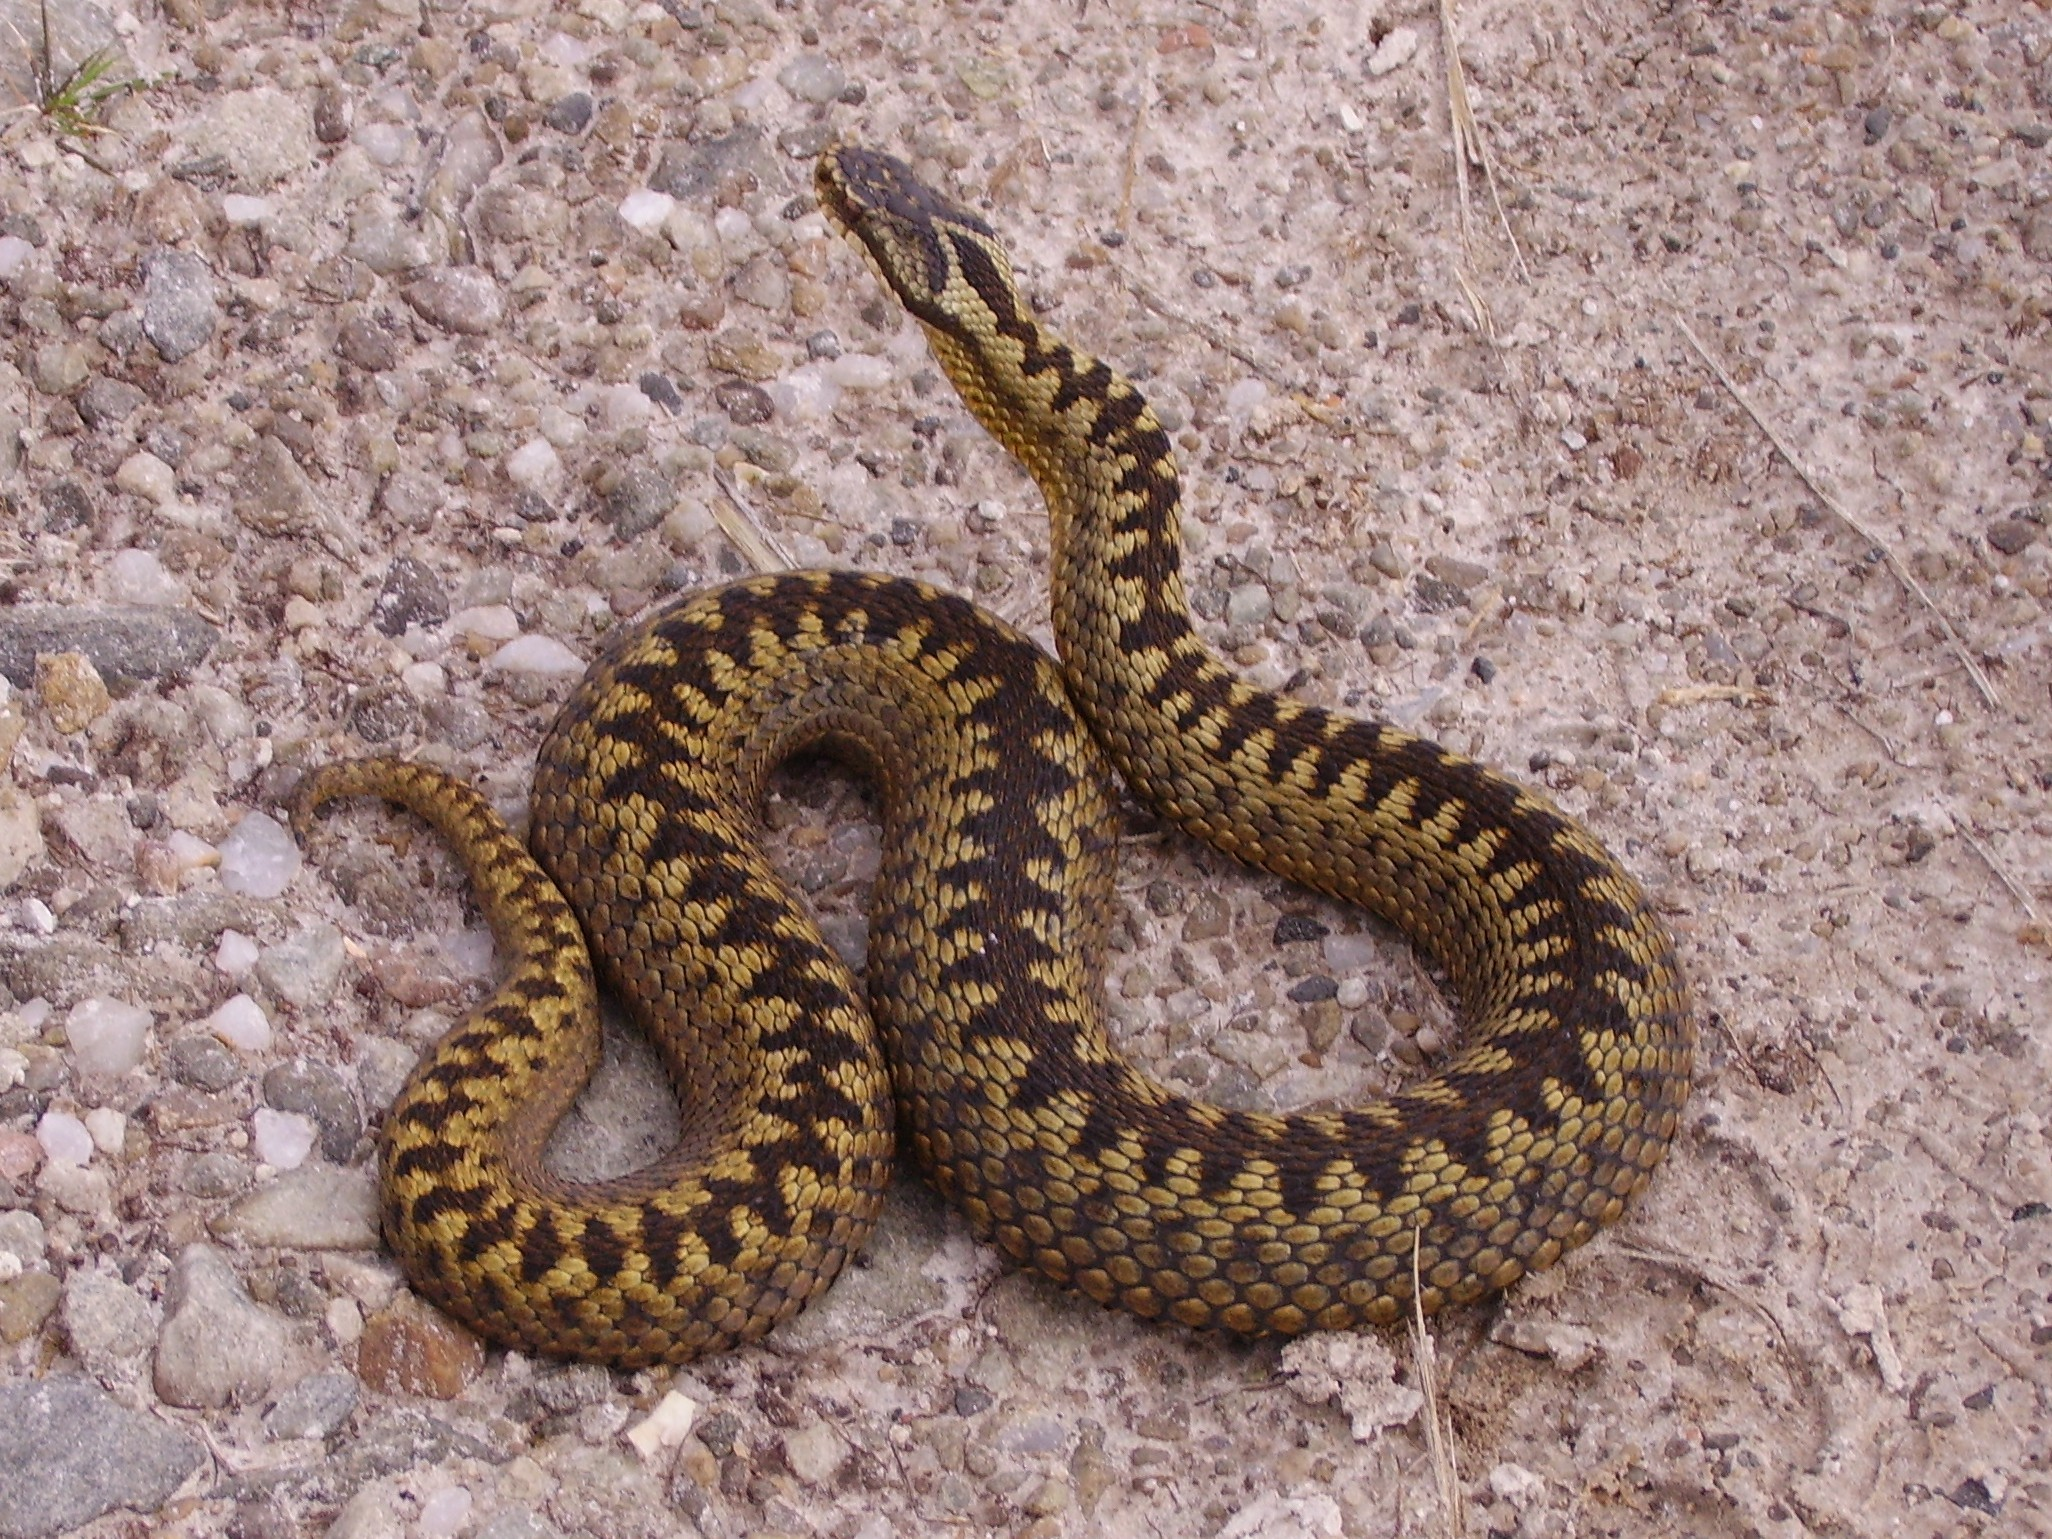 LEAVE ALONE: Adders are Britain's only native venomous snake and should never be picked up